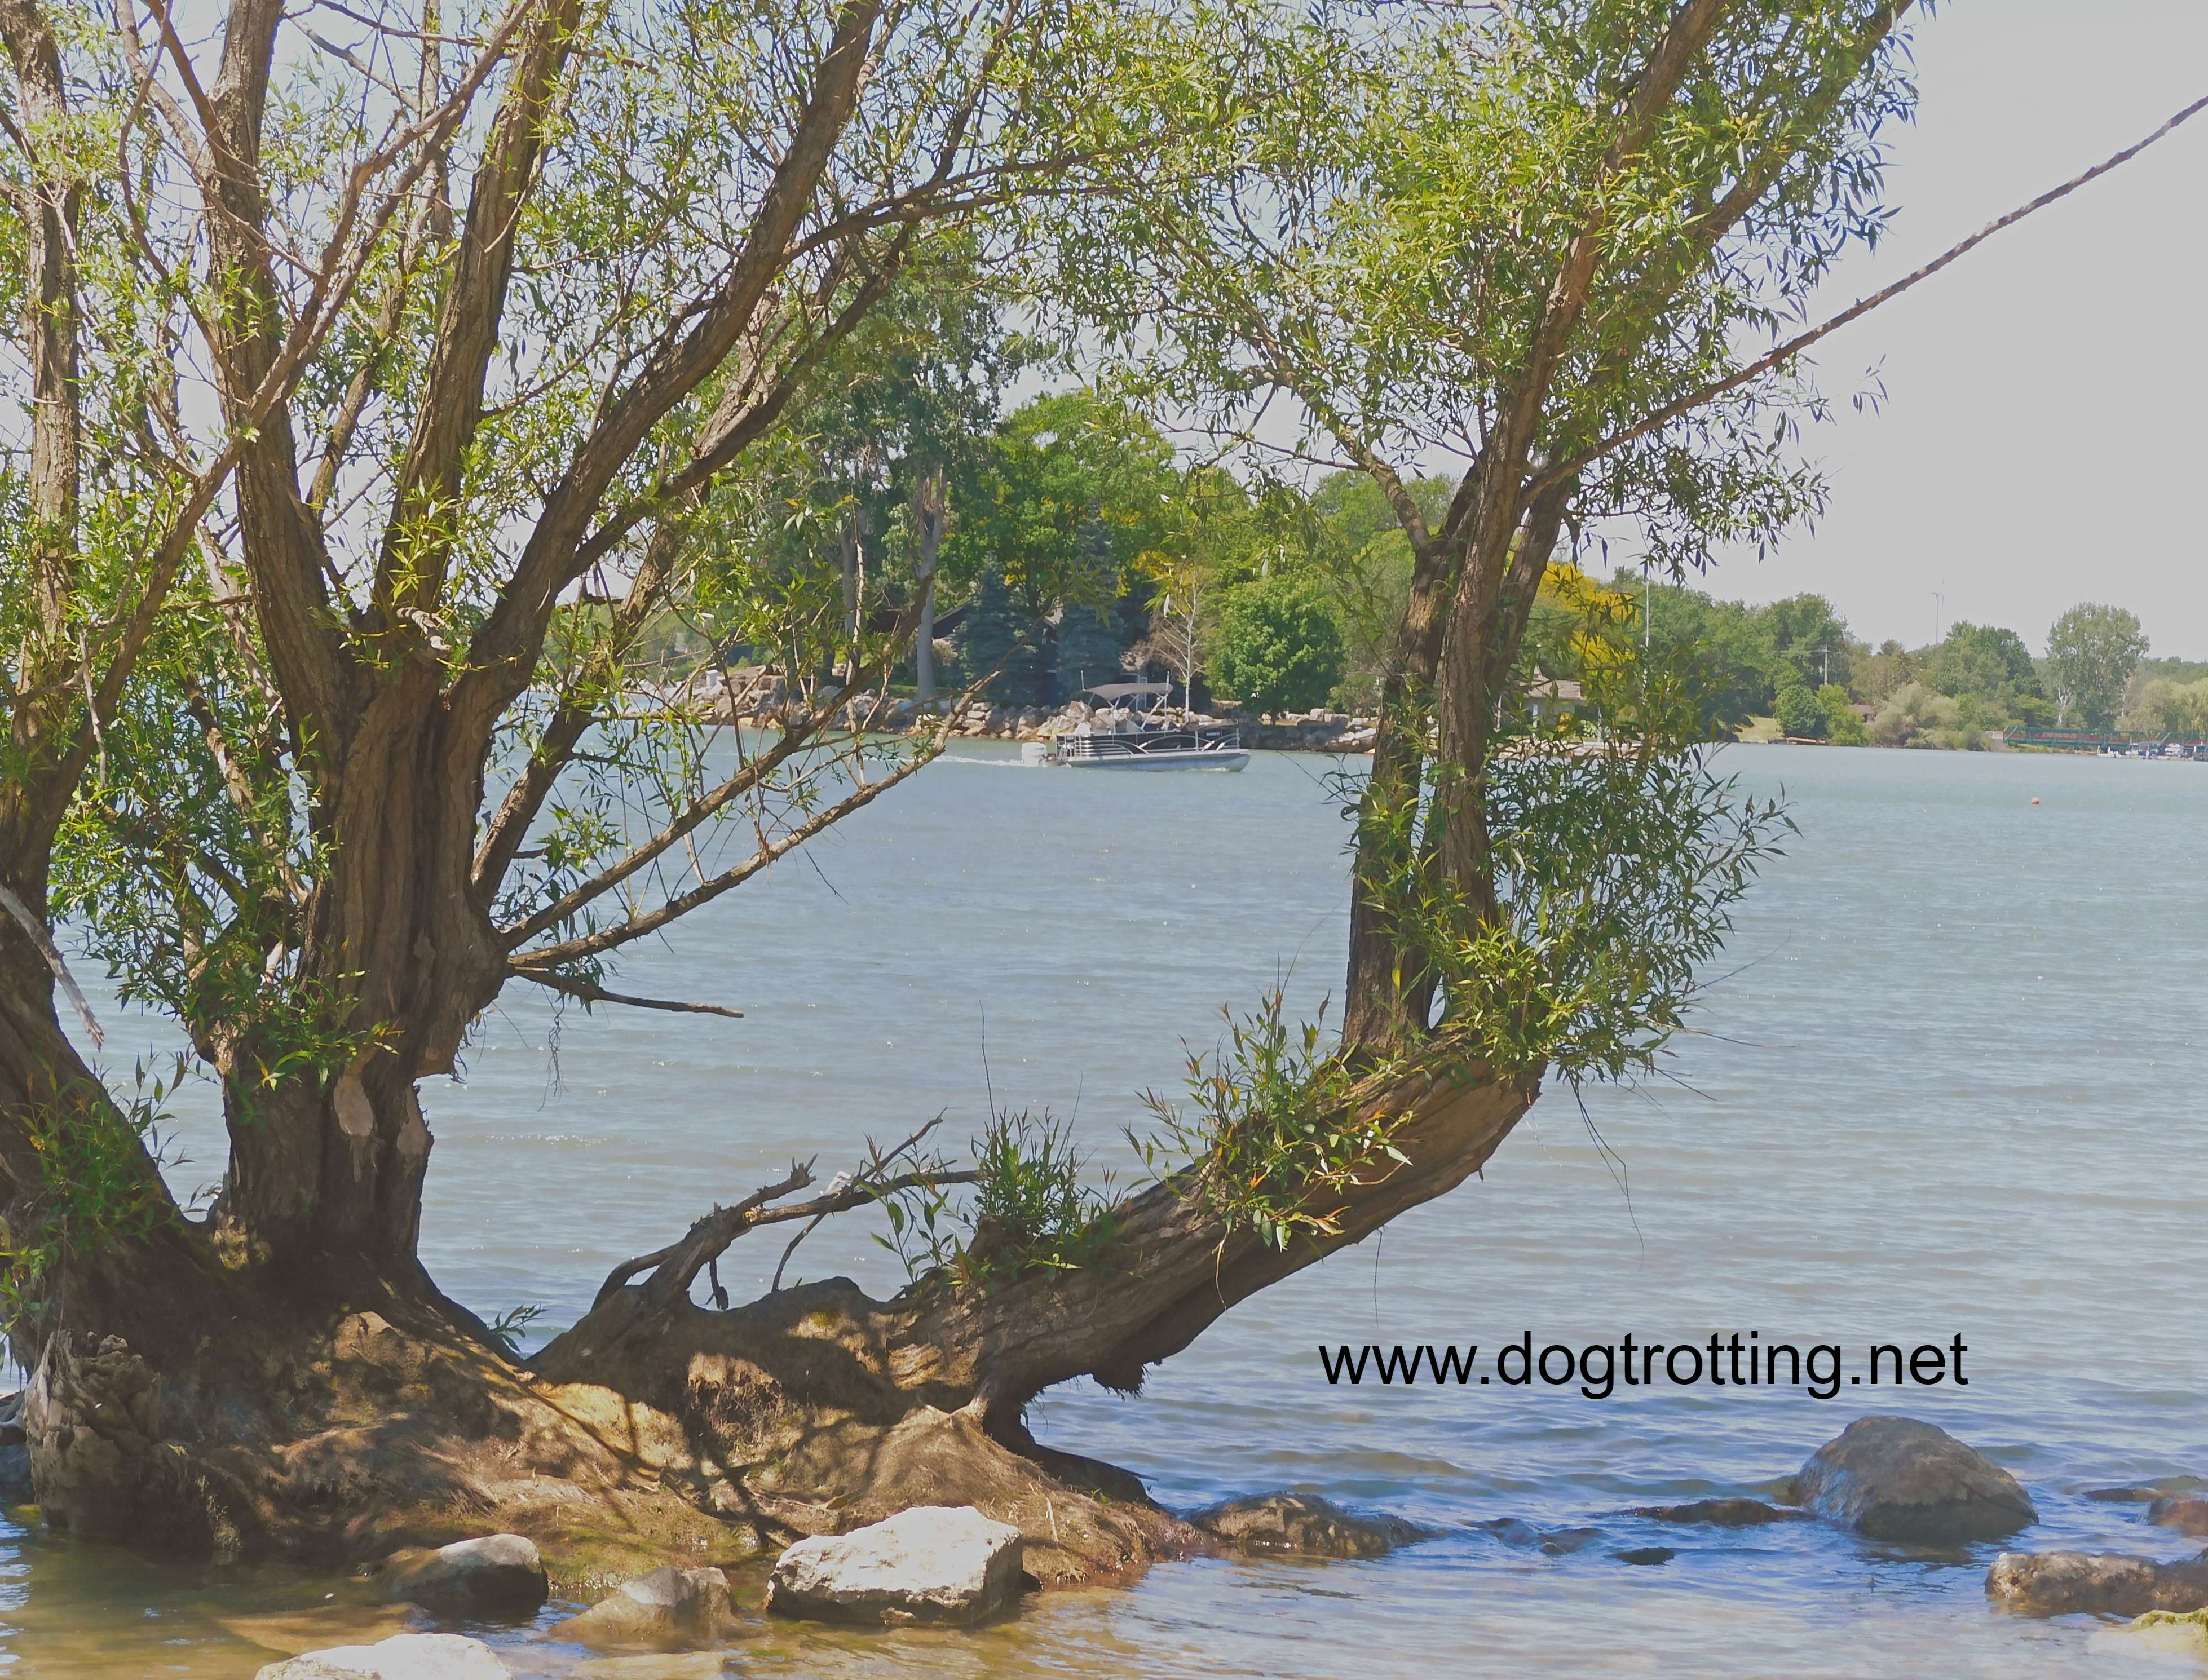 image of boat in the water through trees at Selkirk Provincial Park, Ontario, Canada